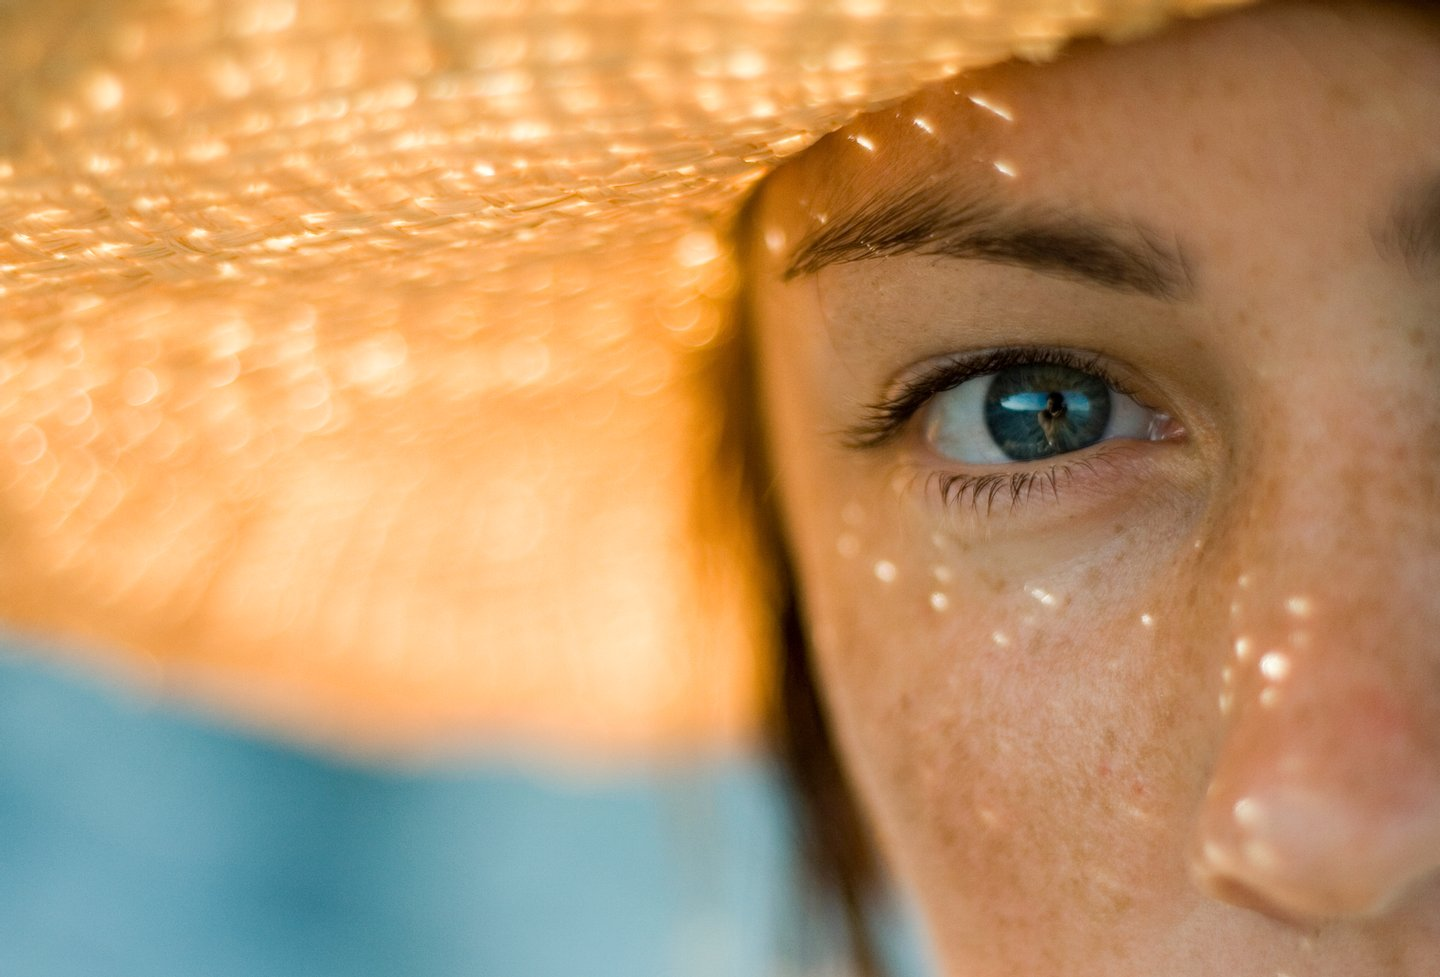 Holiday, Portrait, Women, Females, Straw Hat, Hat, Vacations, Eyelash, Human Eye, Freckle, People, Shadow, Summer, blick, intensiv, People, Weibliche Person,